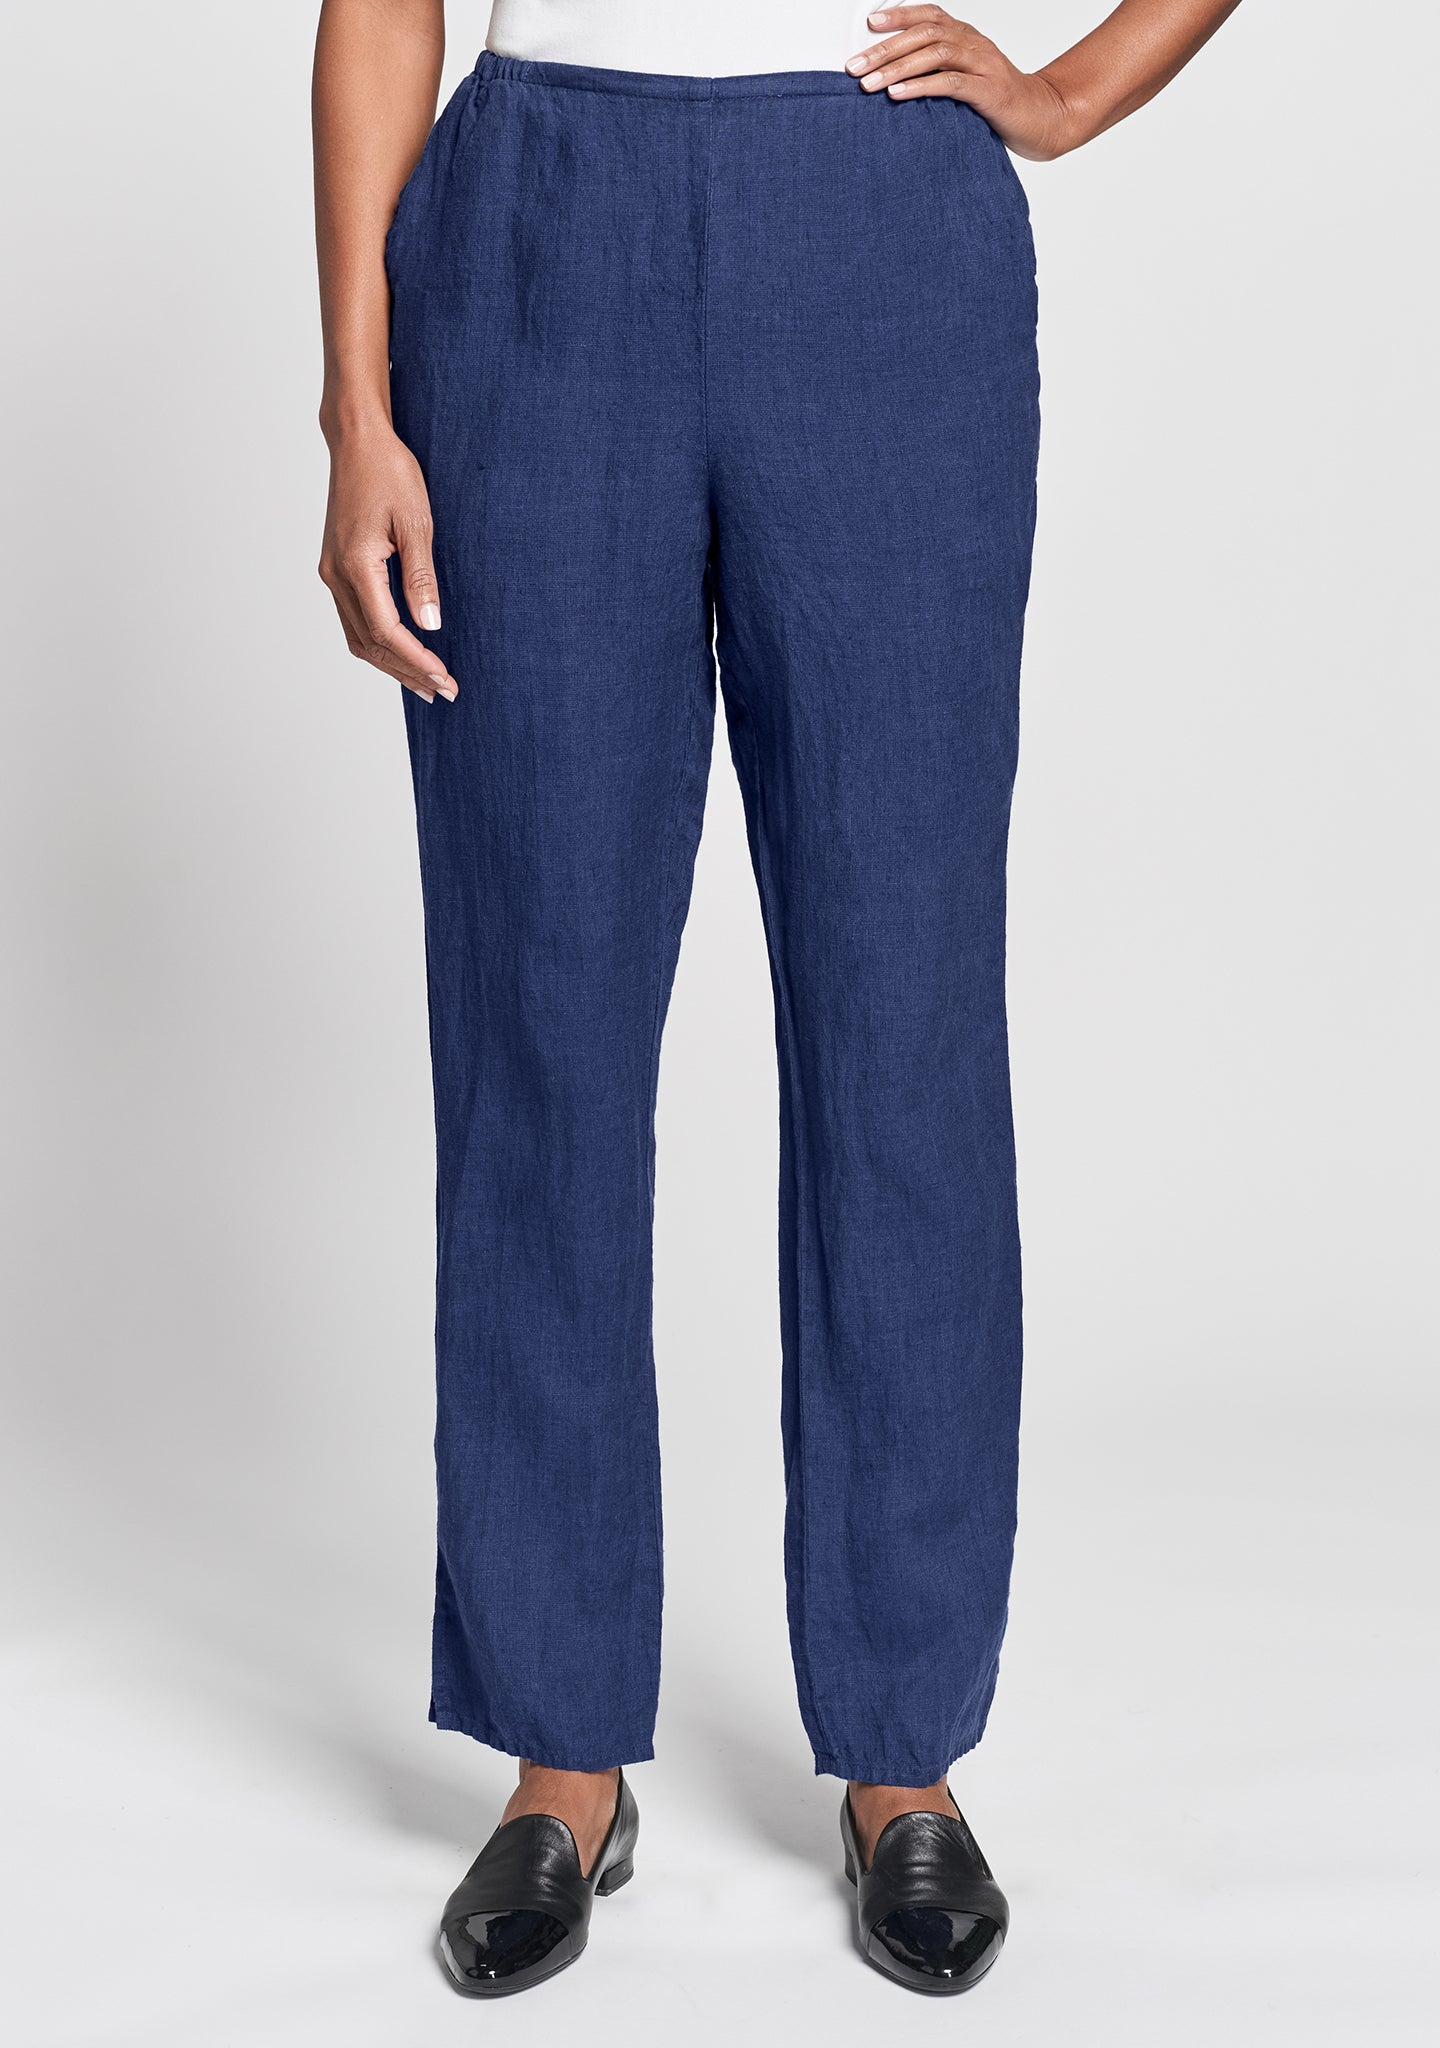 pocketed social pant linen pants with elastic waist blue